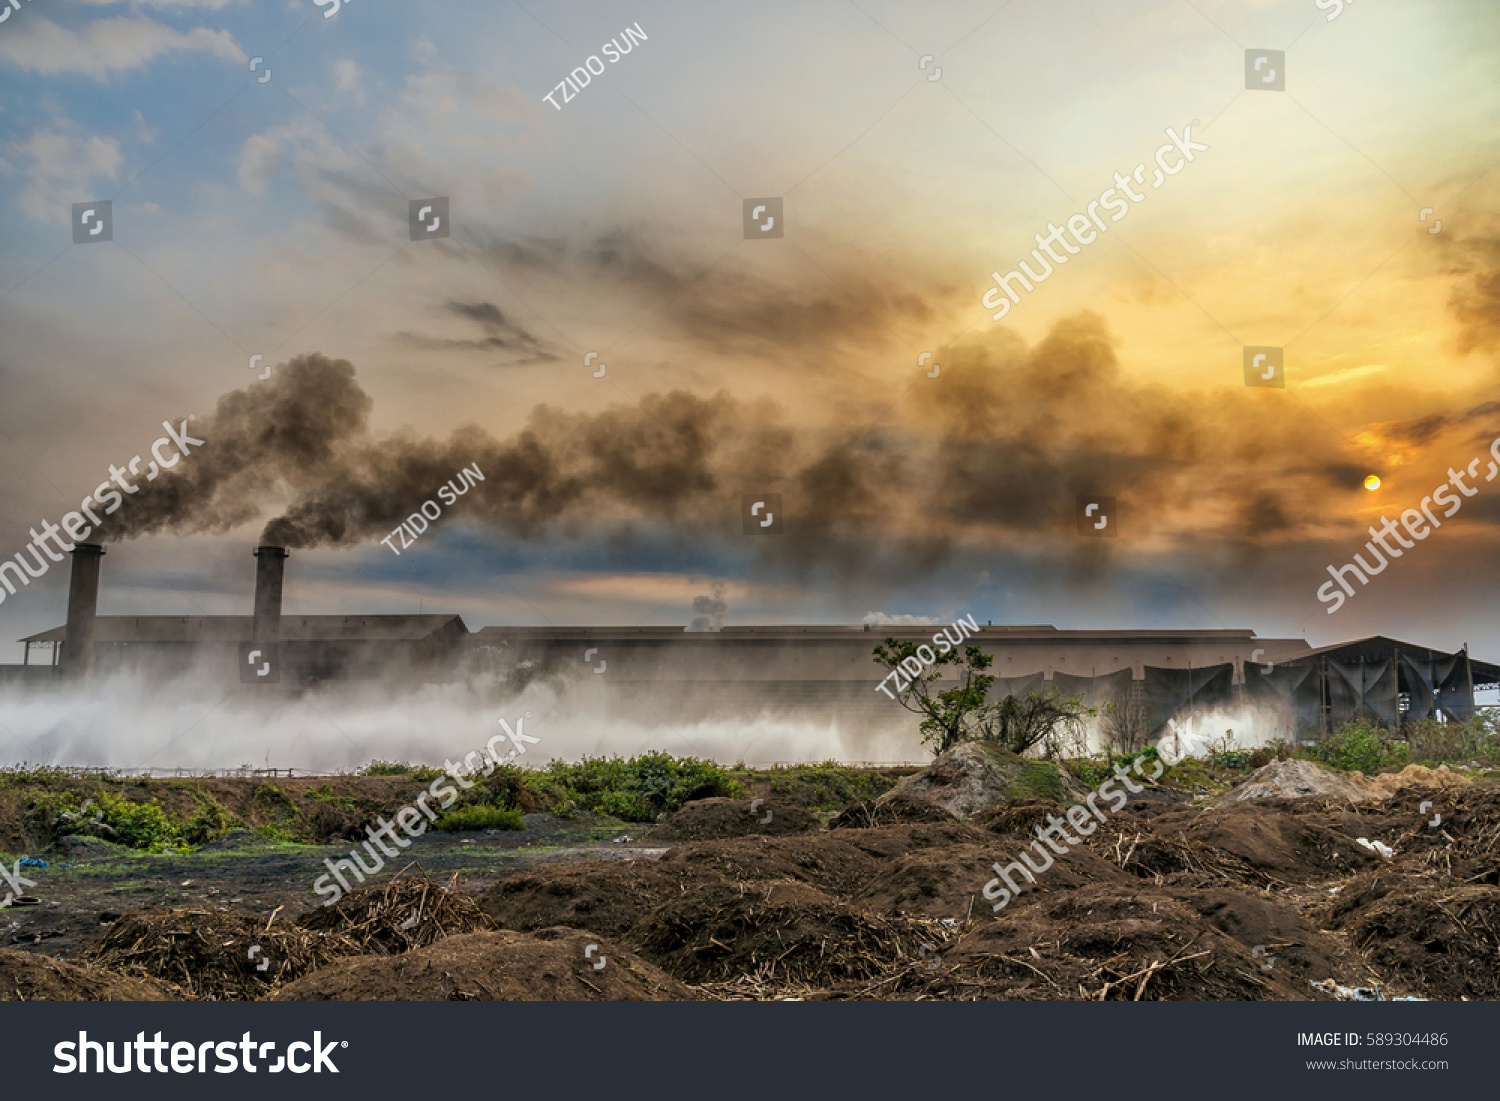 smokestack factory black smoke over sky stock photo 589304486 shutterstock. Black Bedroom Furniture Sets. Home Design Ideas